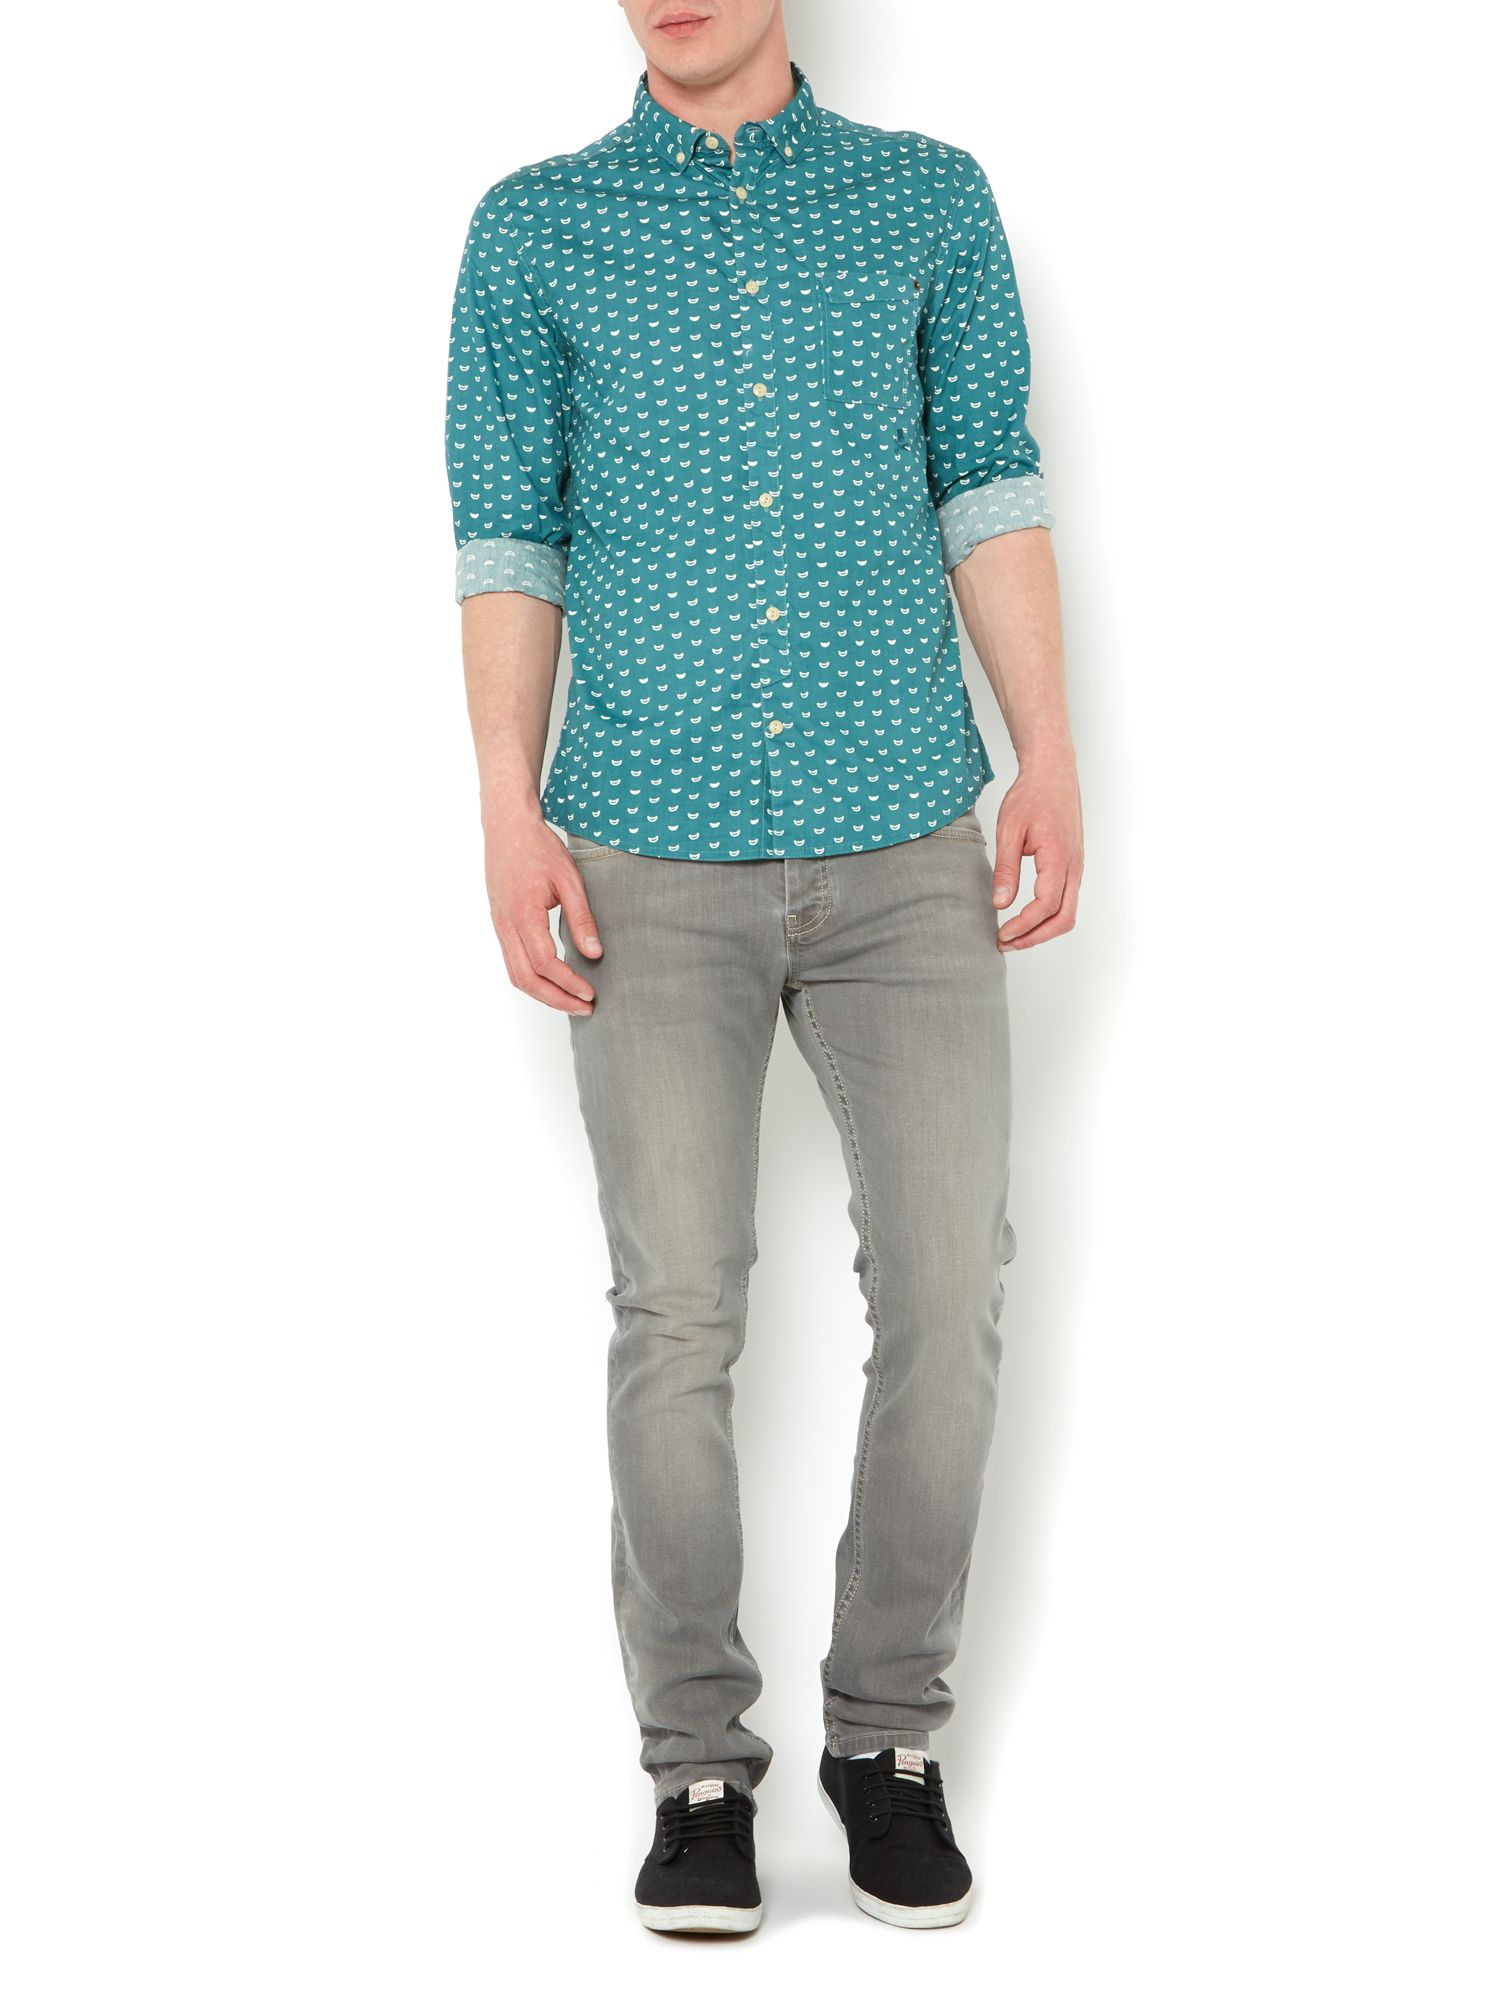 Warren teal print shirt